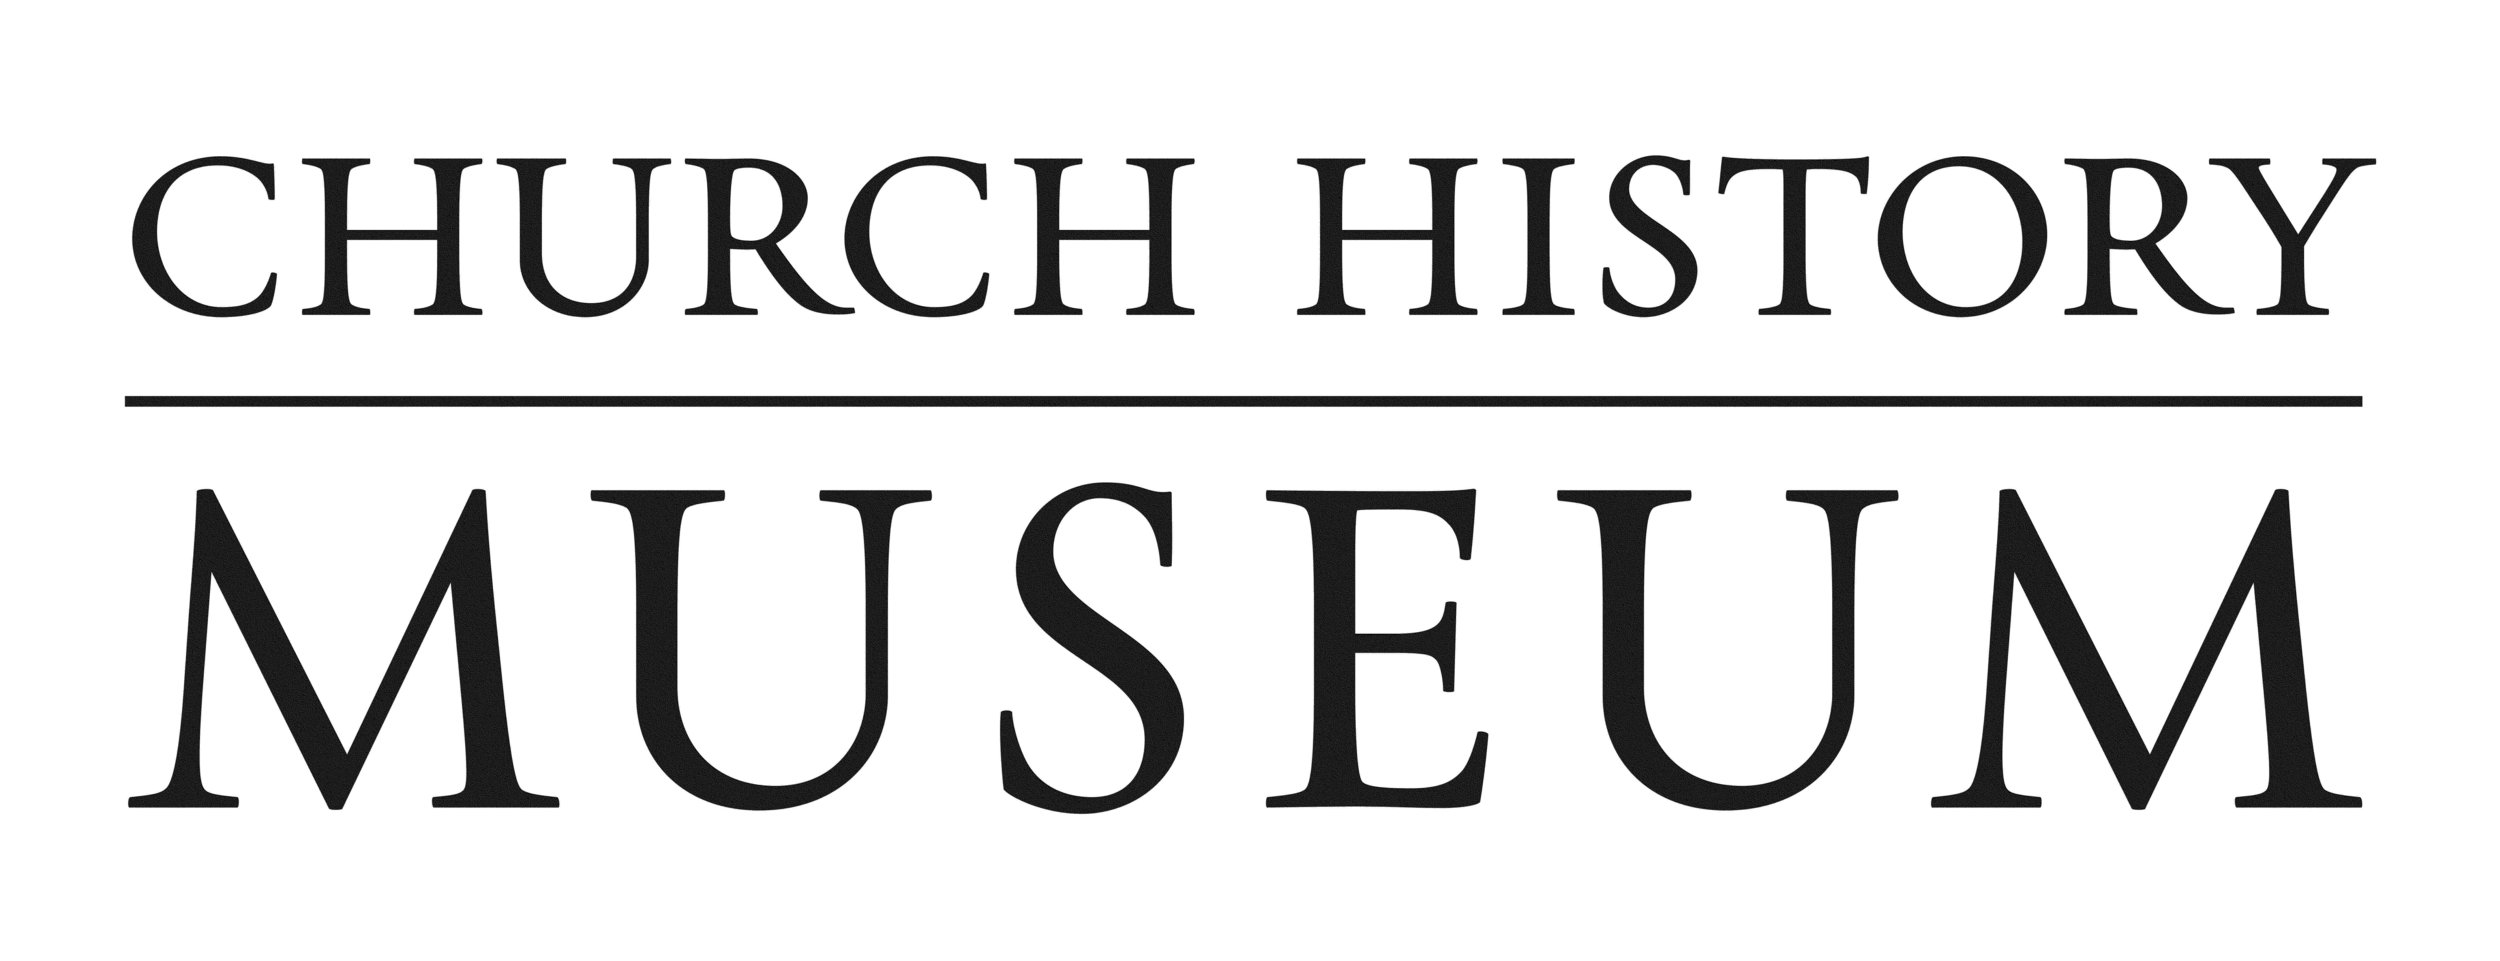 Church History Museum LOGO.jpg